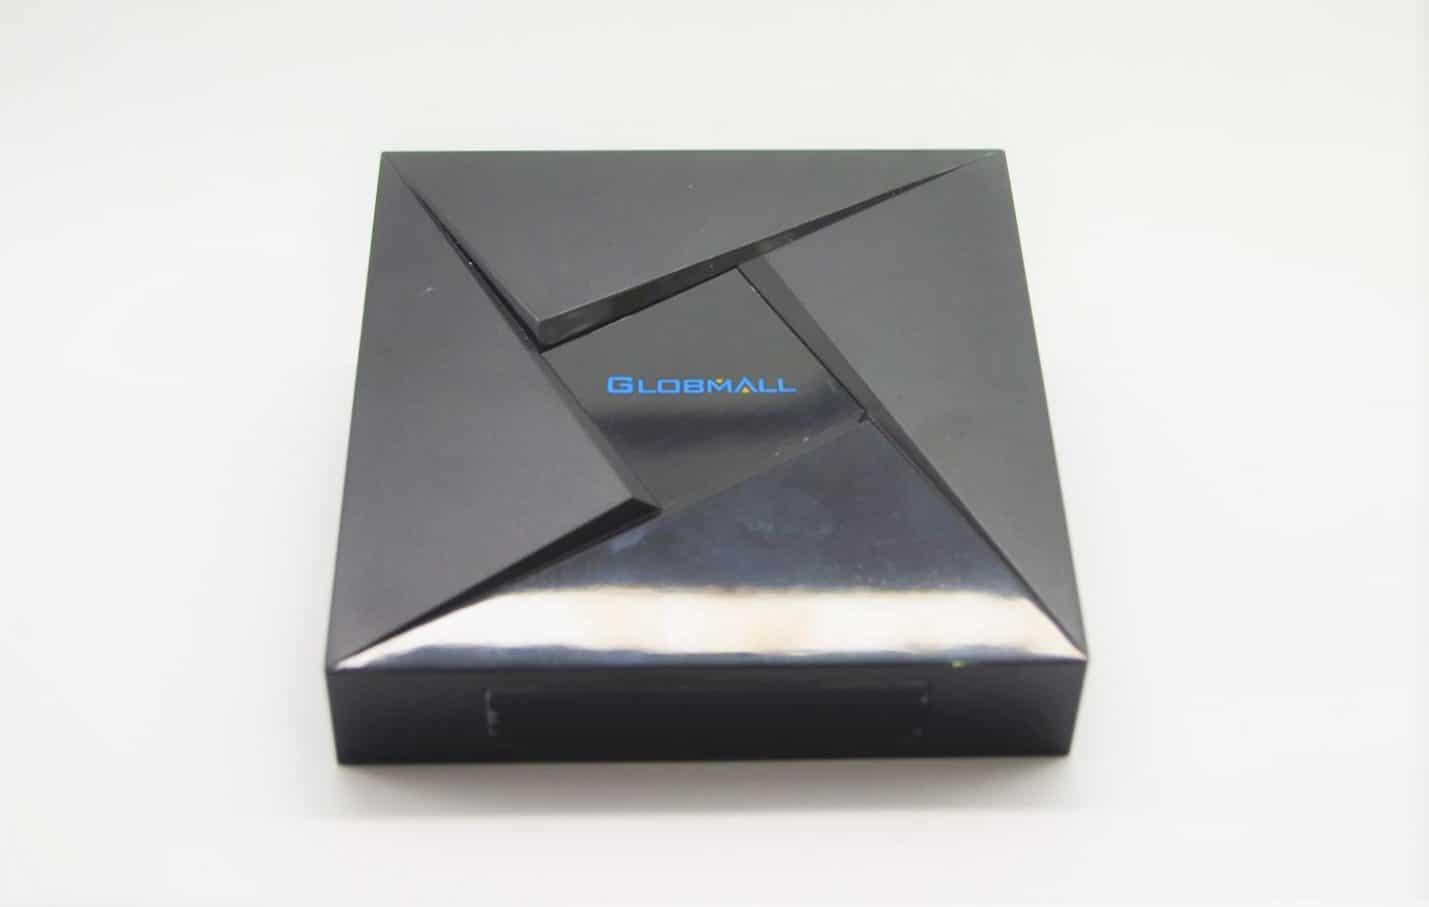 Globmall Android TV Box X4